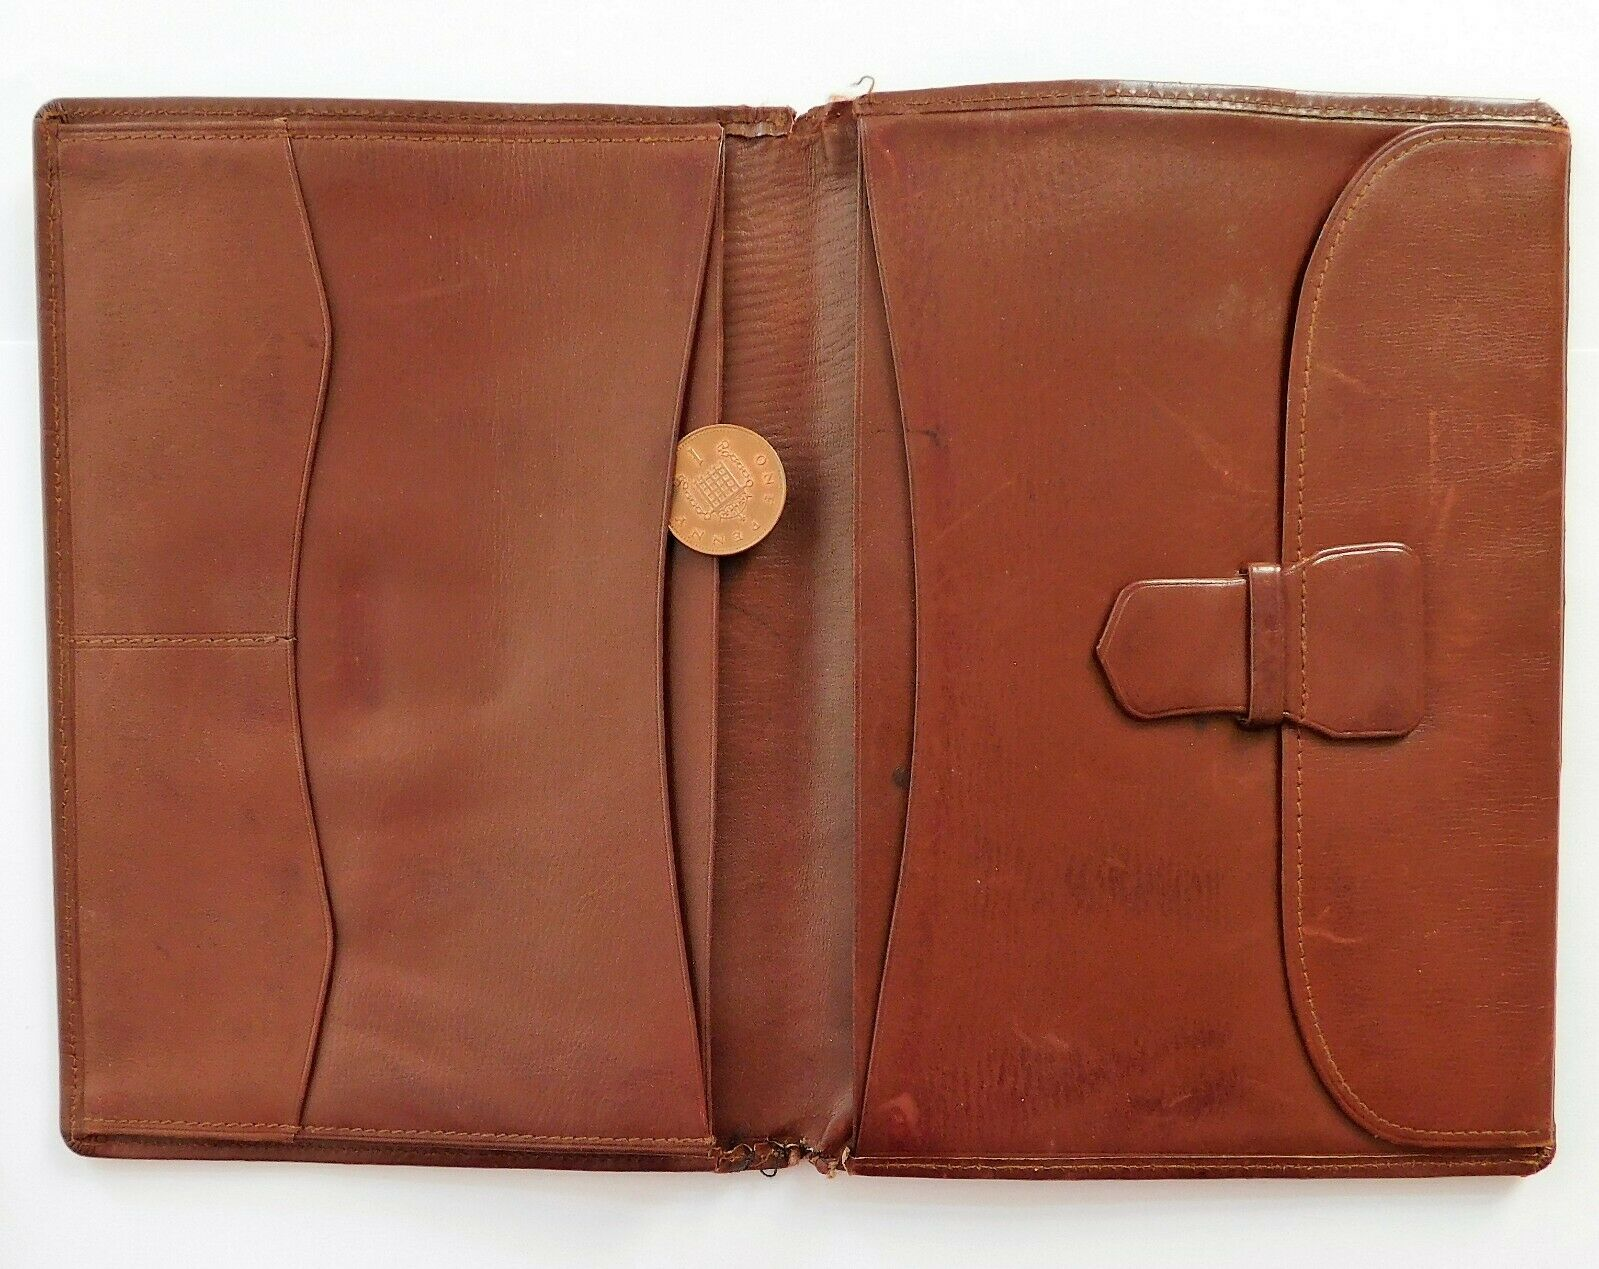 SMG vintage travel wallet real leather brown LARGE 16x12 cm Art Deco mens